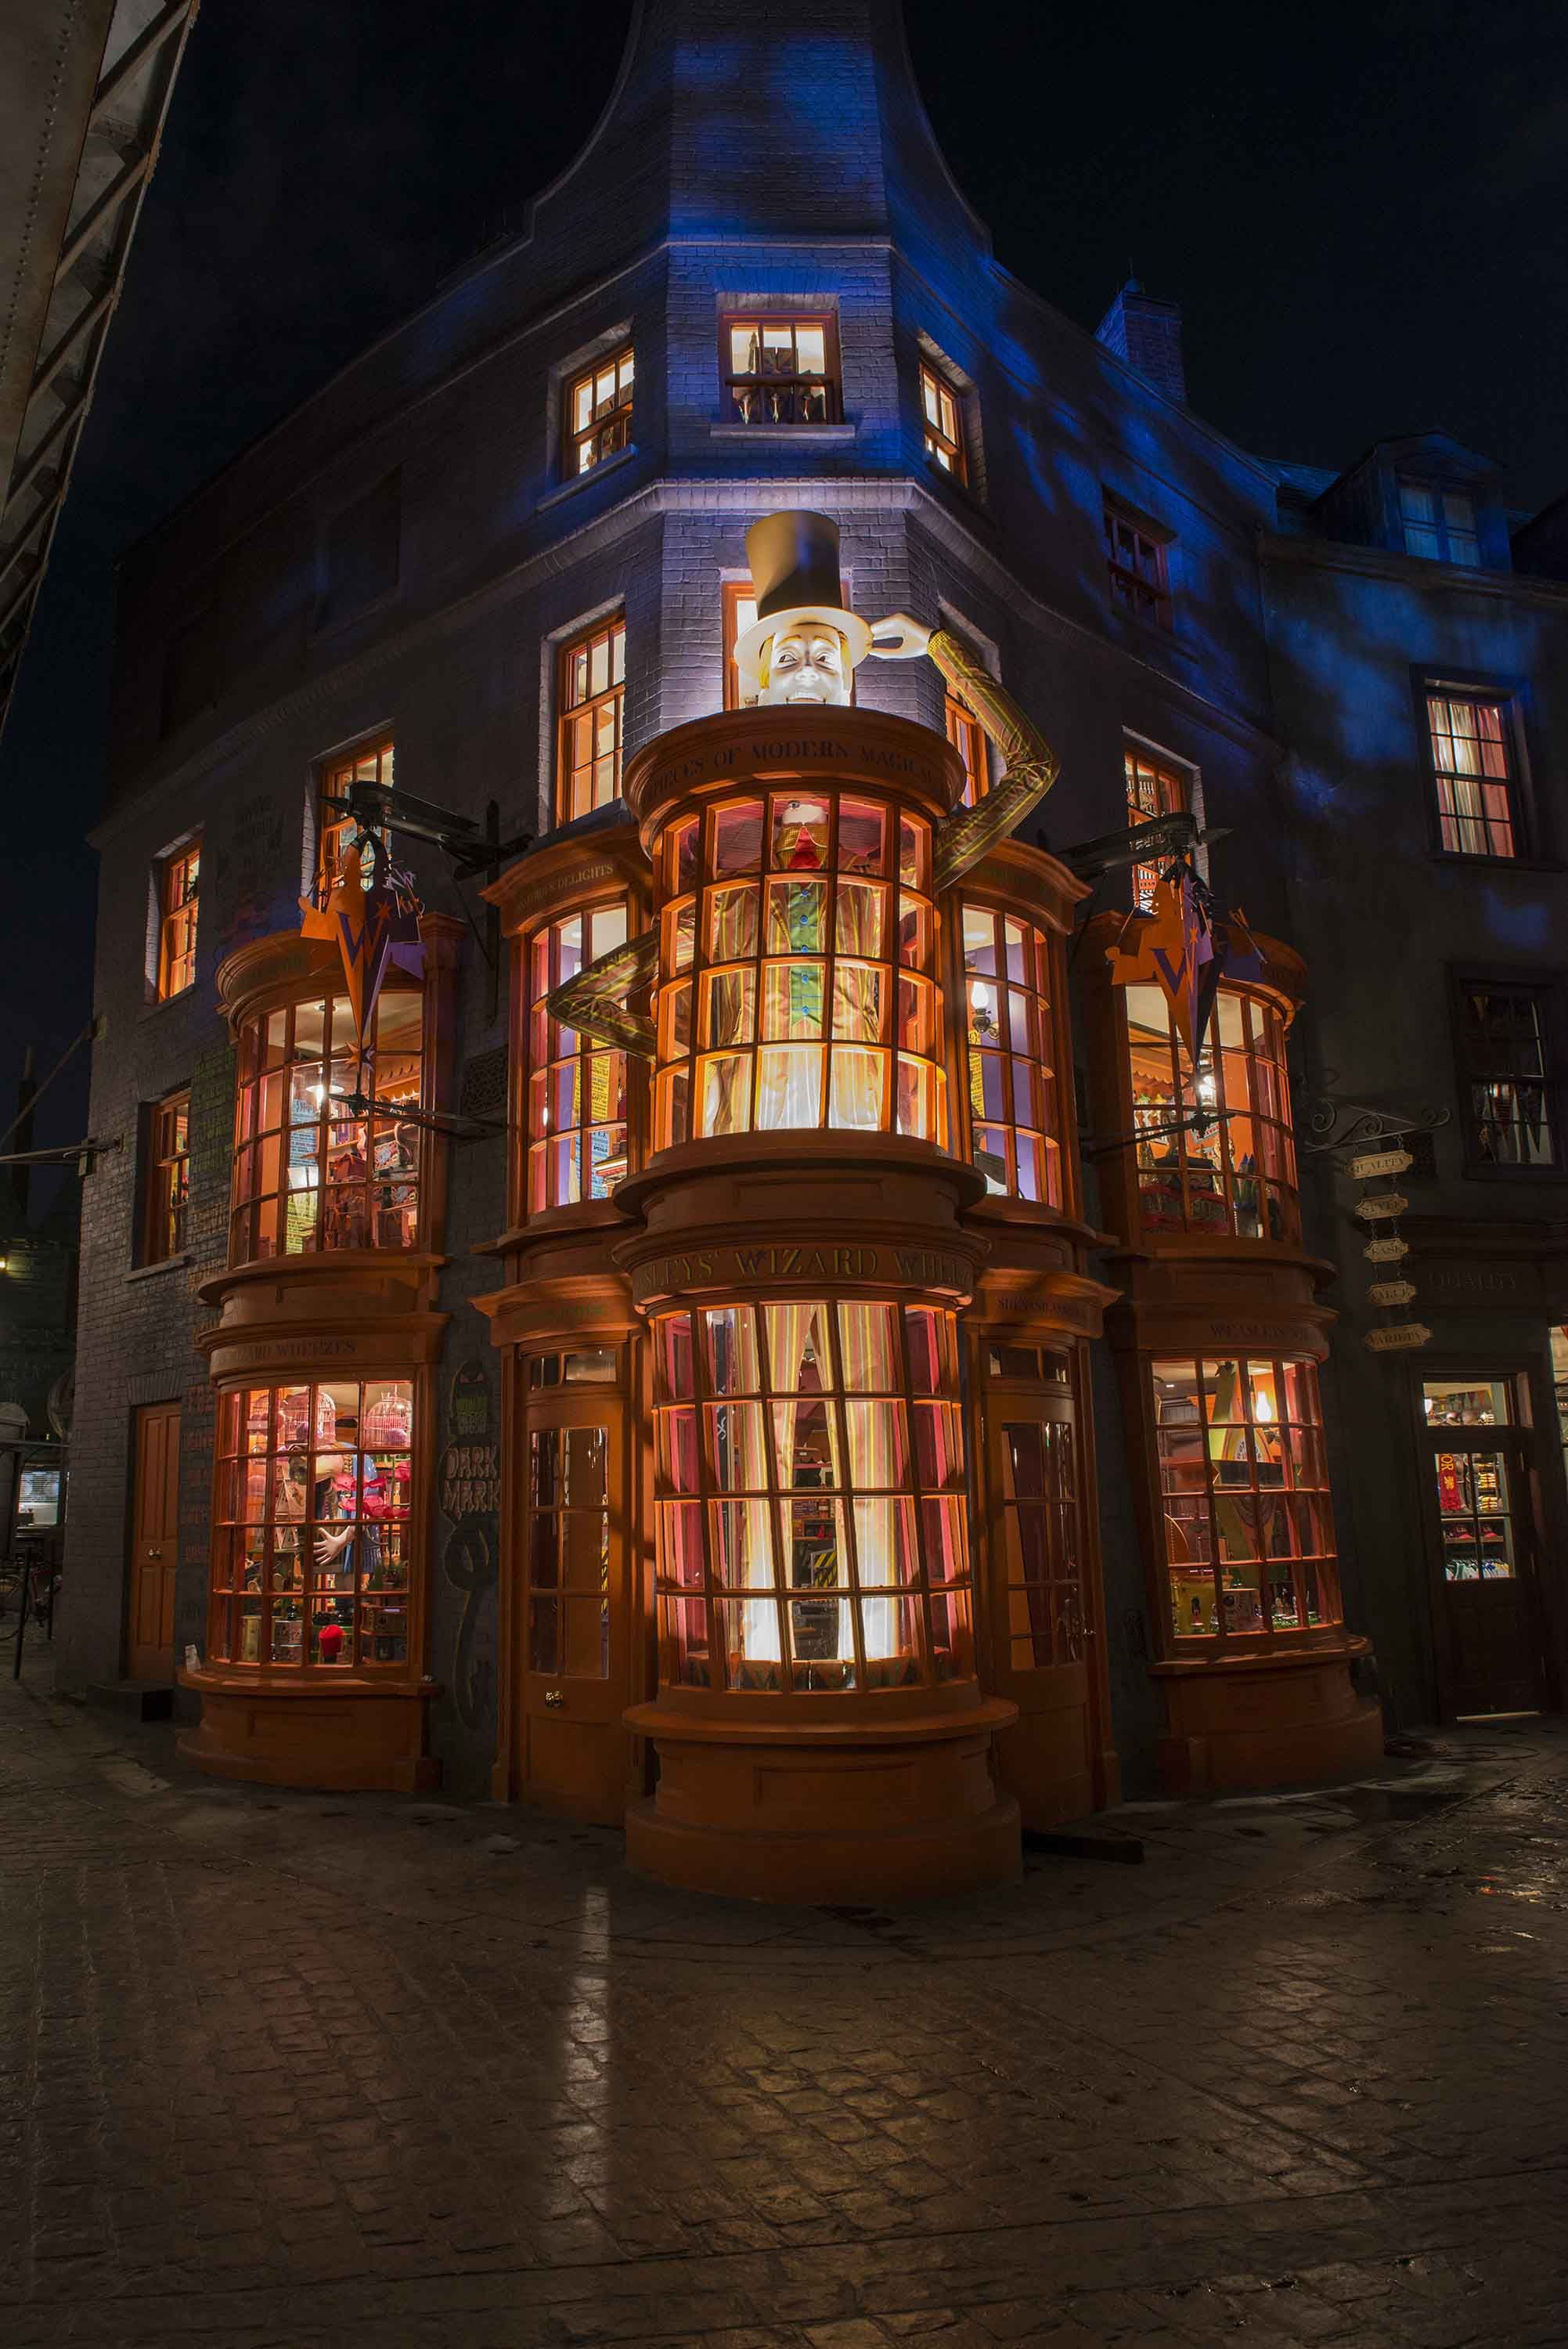 Weasley's Wizard Wheezes at the Wizarding World of Harry Potter